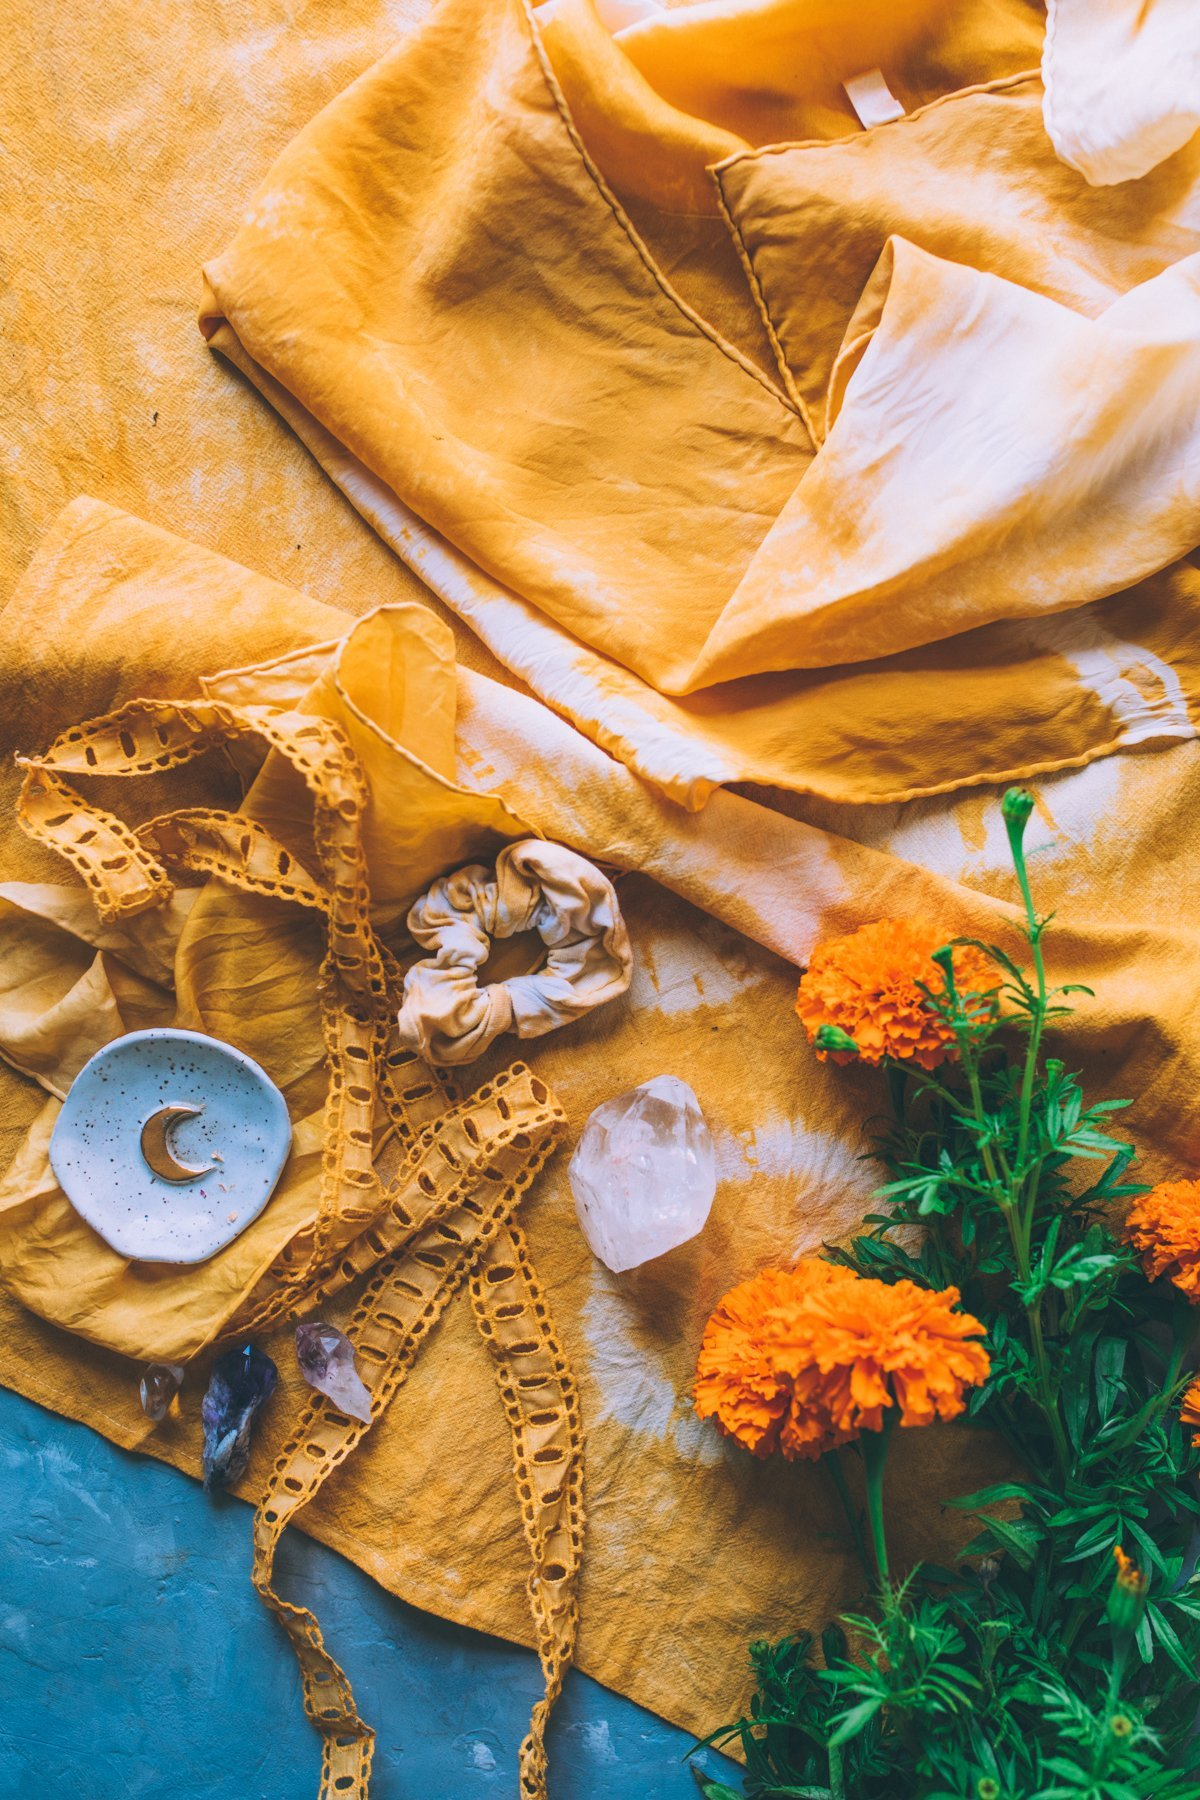 Marigold flowers, tea towels, and lace